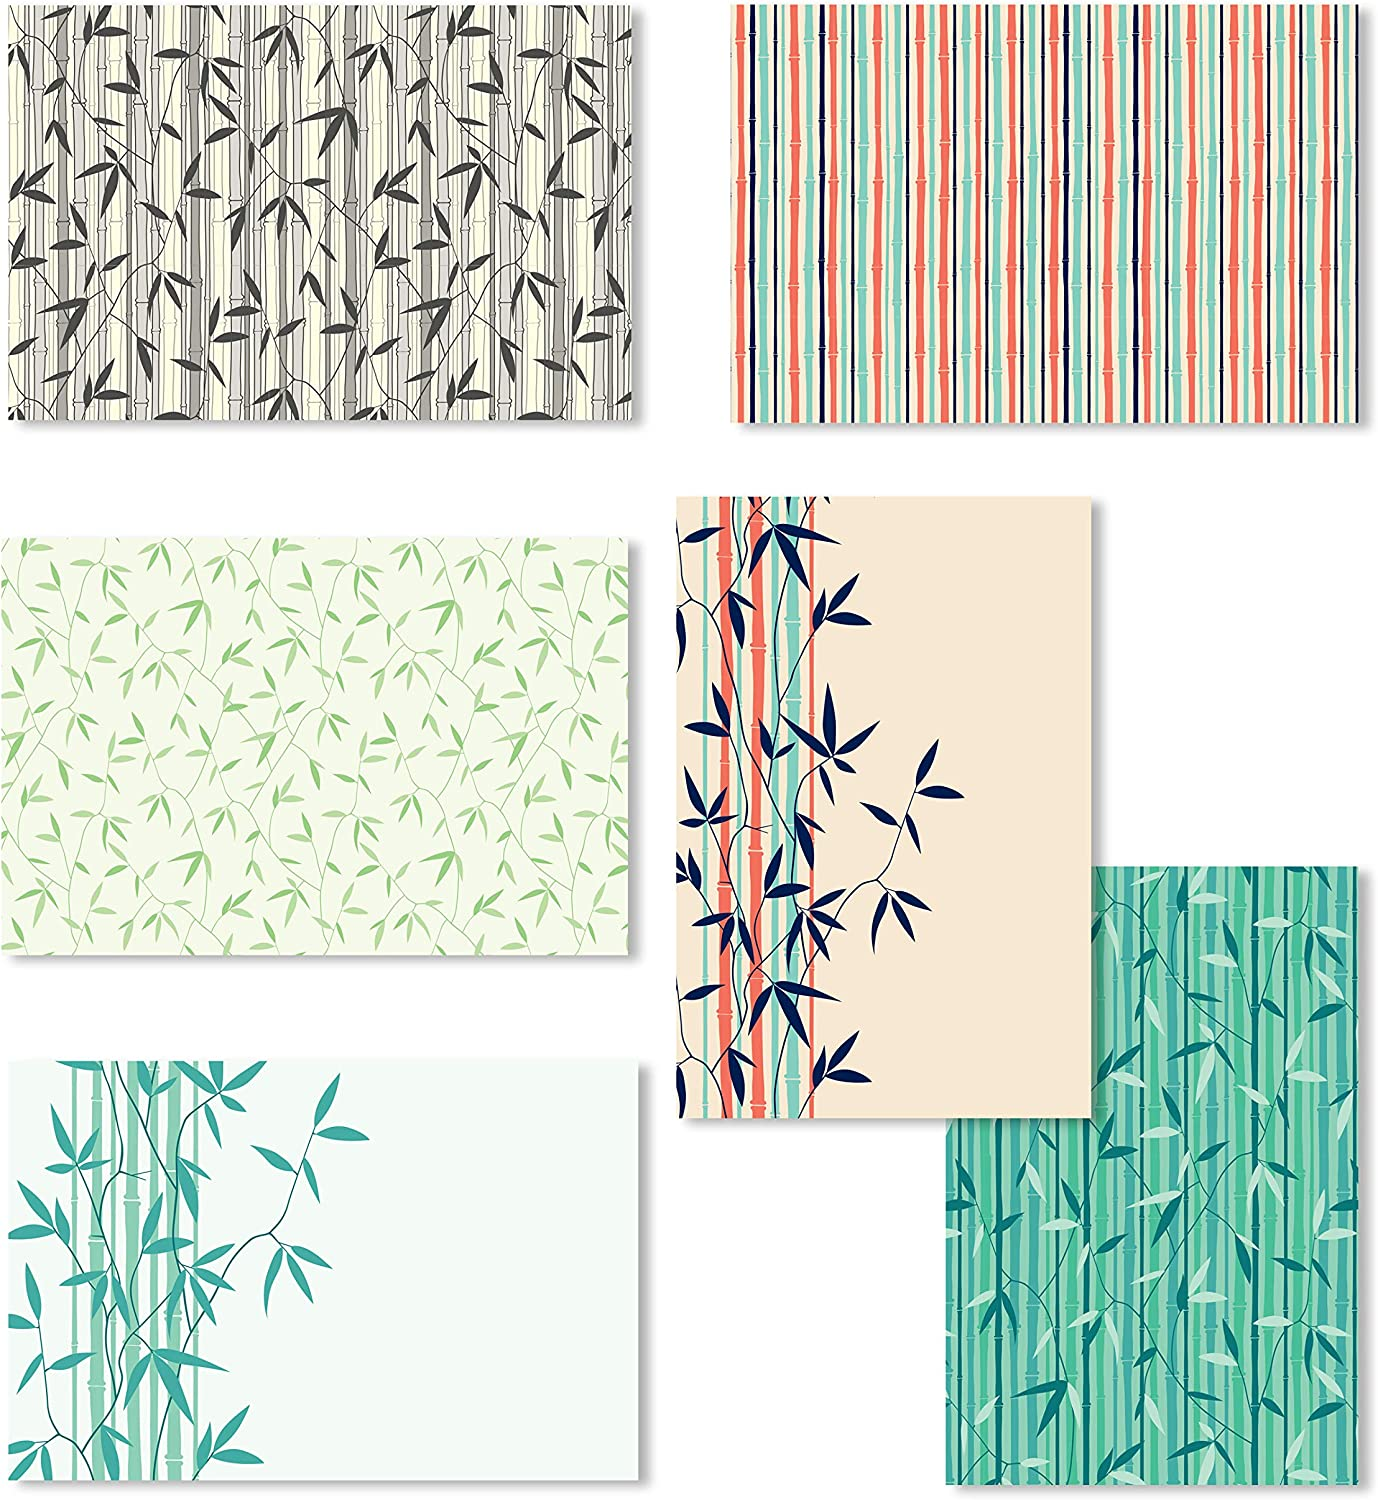 Blank Greeting Cards, 4x6 Blank Note Cards, Blank Greeting Cards Assortment Bulk, Blank Note Cards with Envelopes, All Occasion Blank Greeting Cards, Blank Bamboo Note Cards - 4 x 6 Inches, 36 Pack